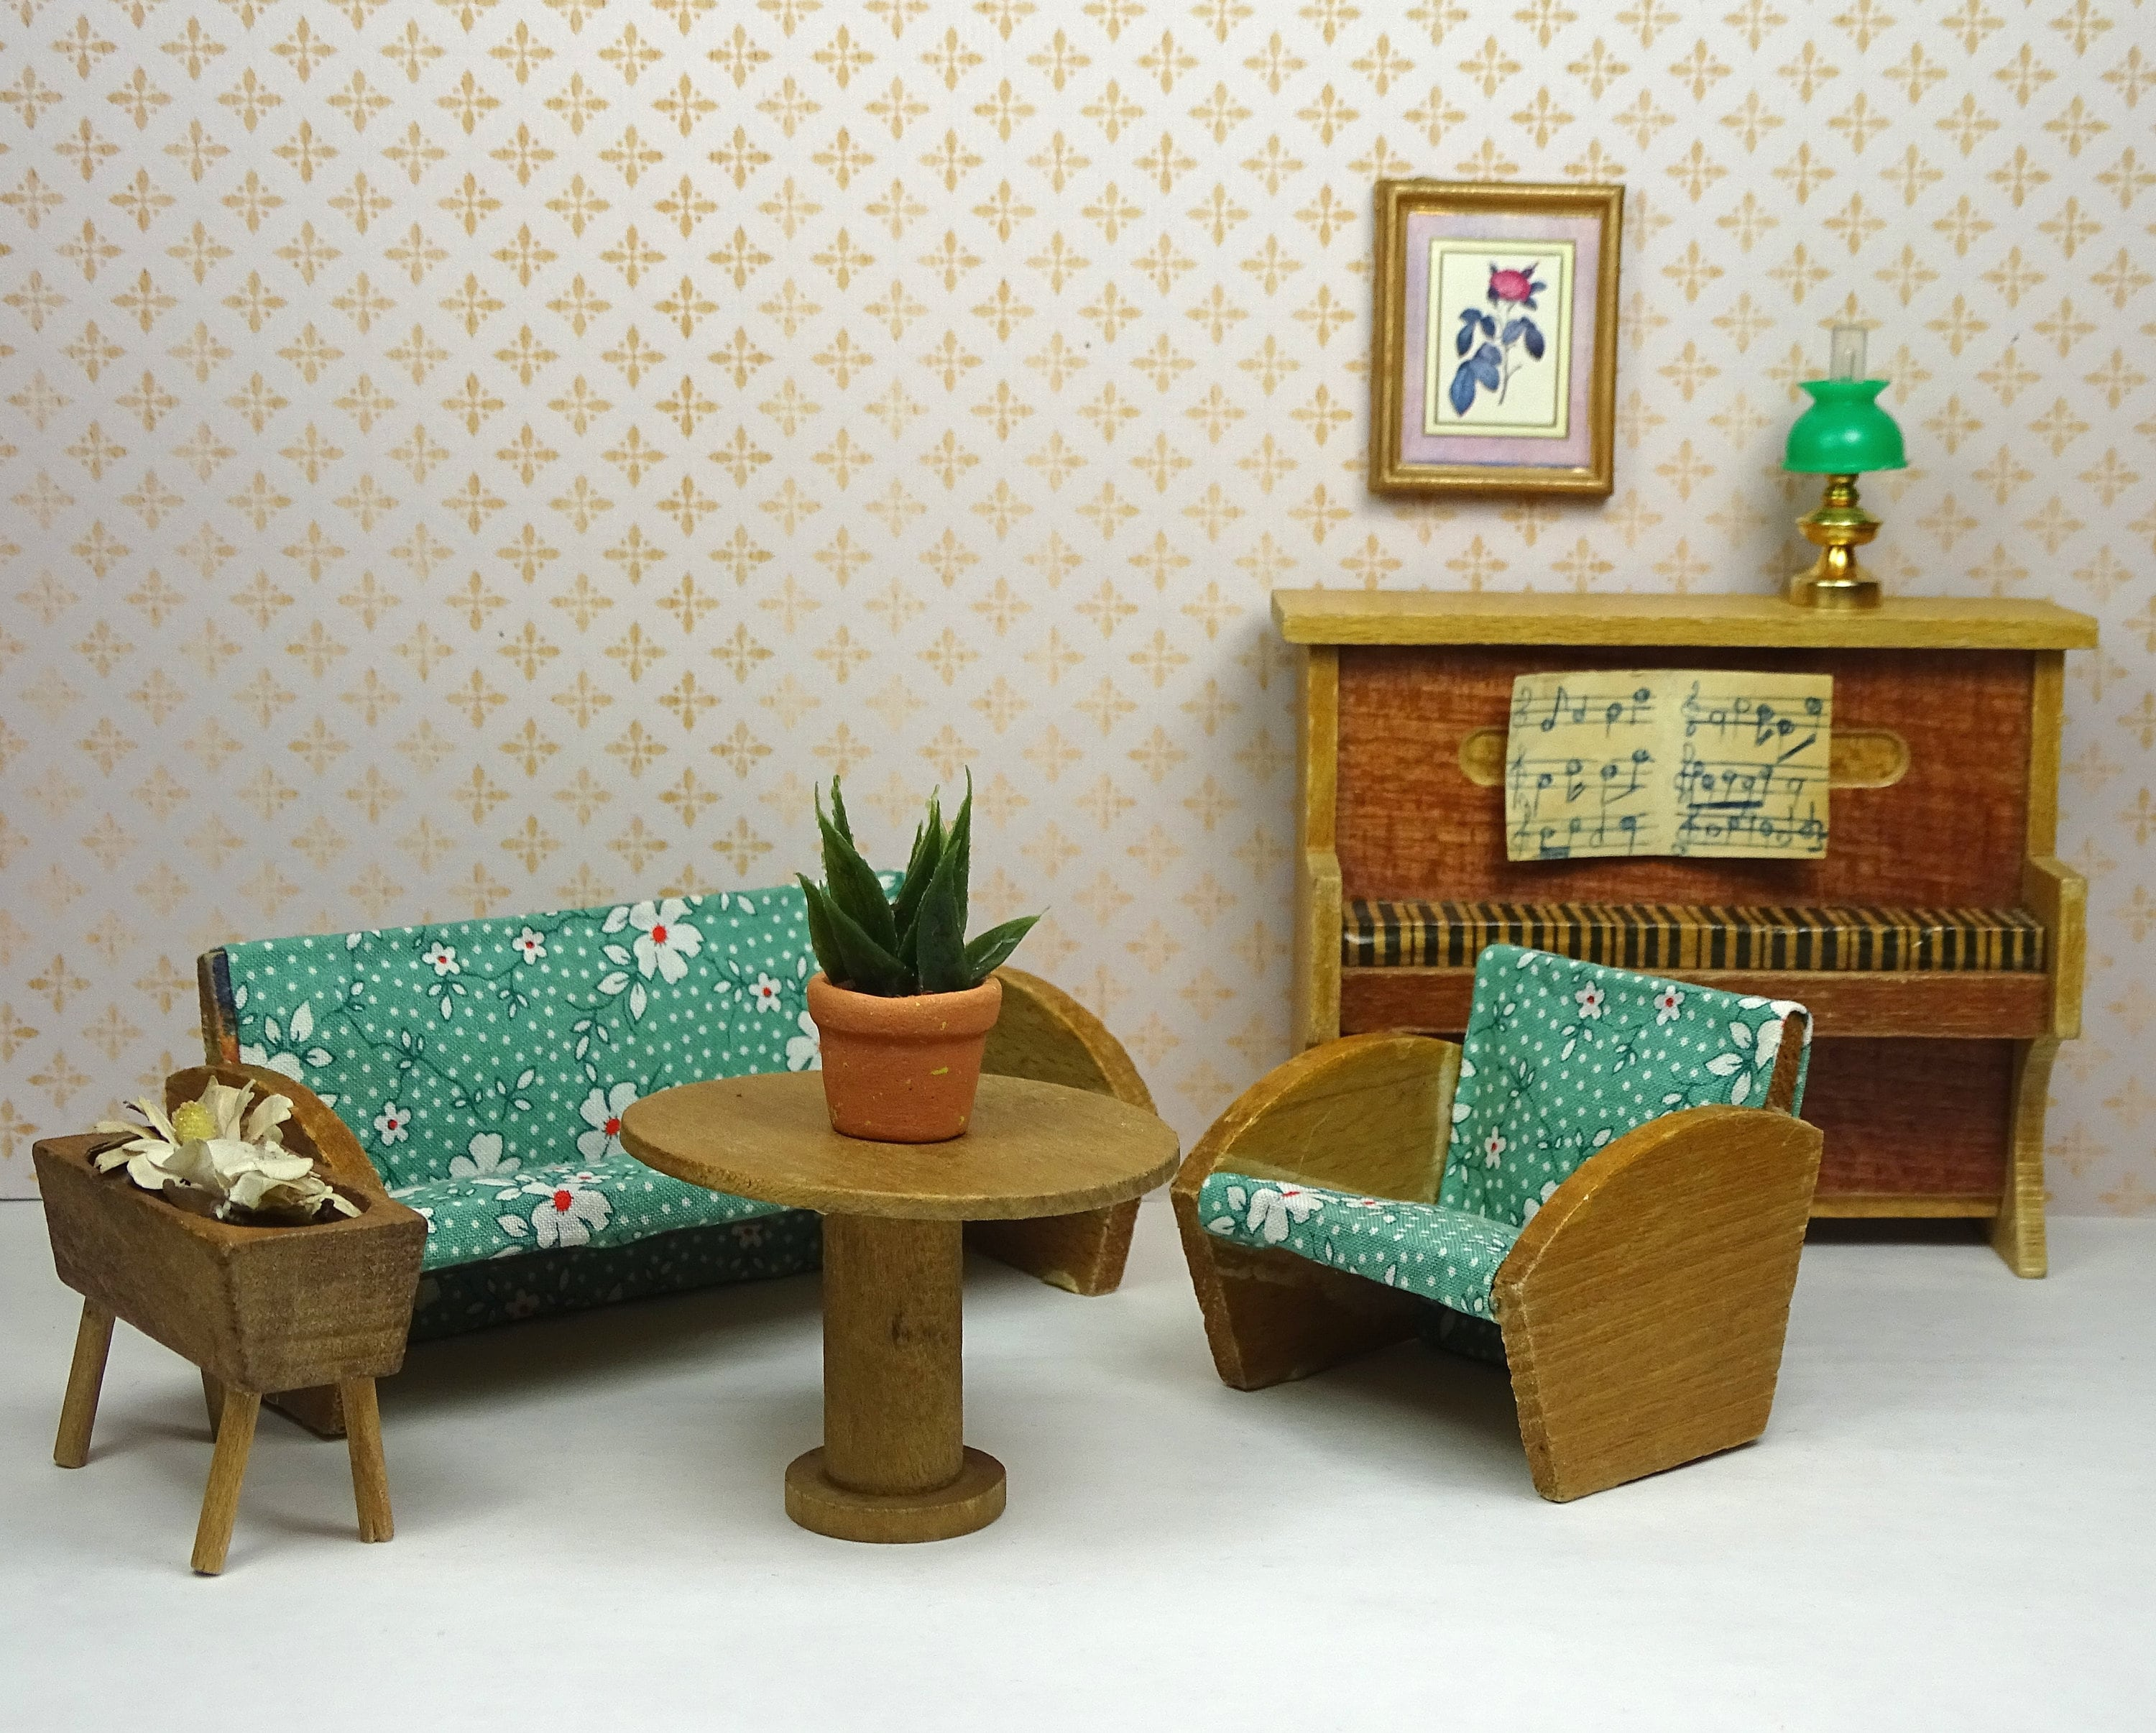 Dollhouse Vintage Living Room Set 1940s 1950s 1970s 1980s Wooden Furniture  Floral Green